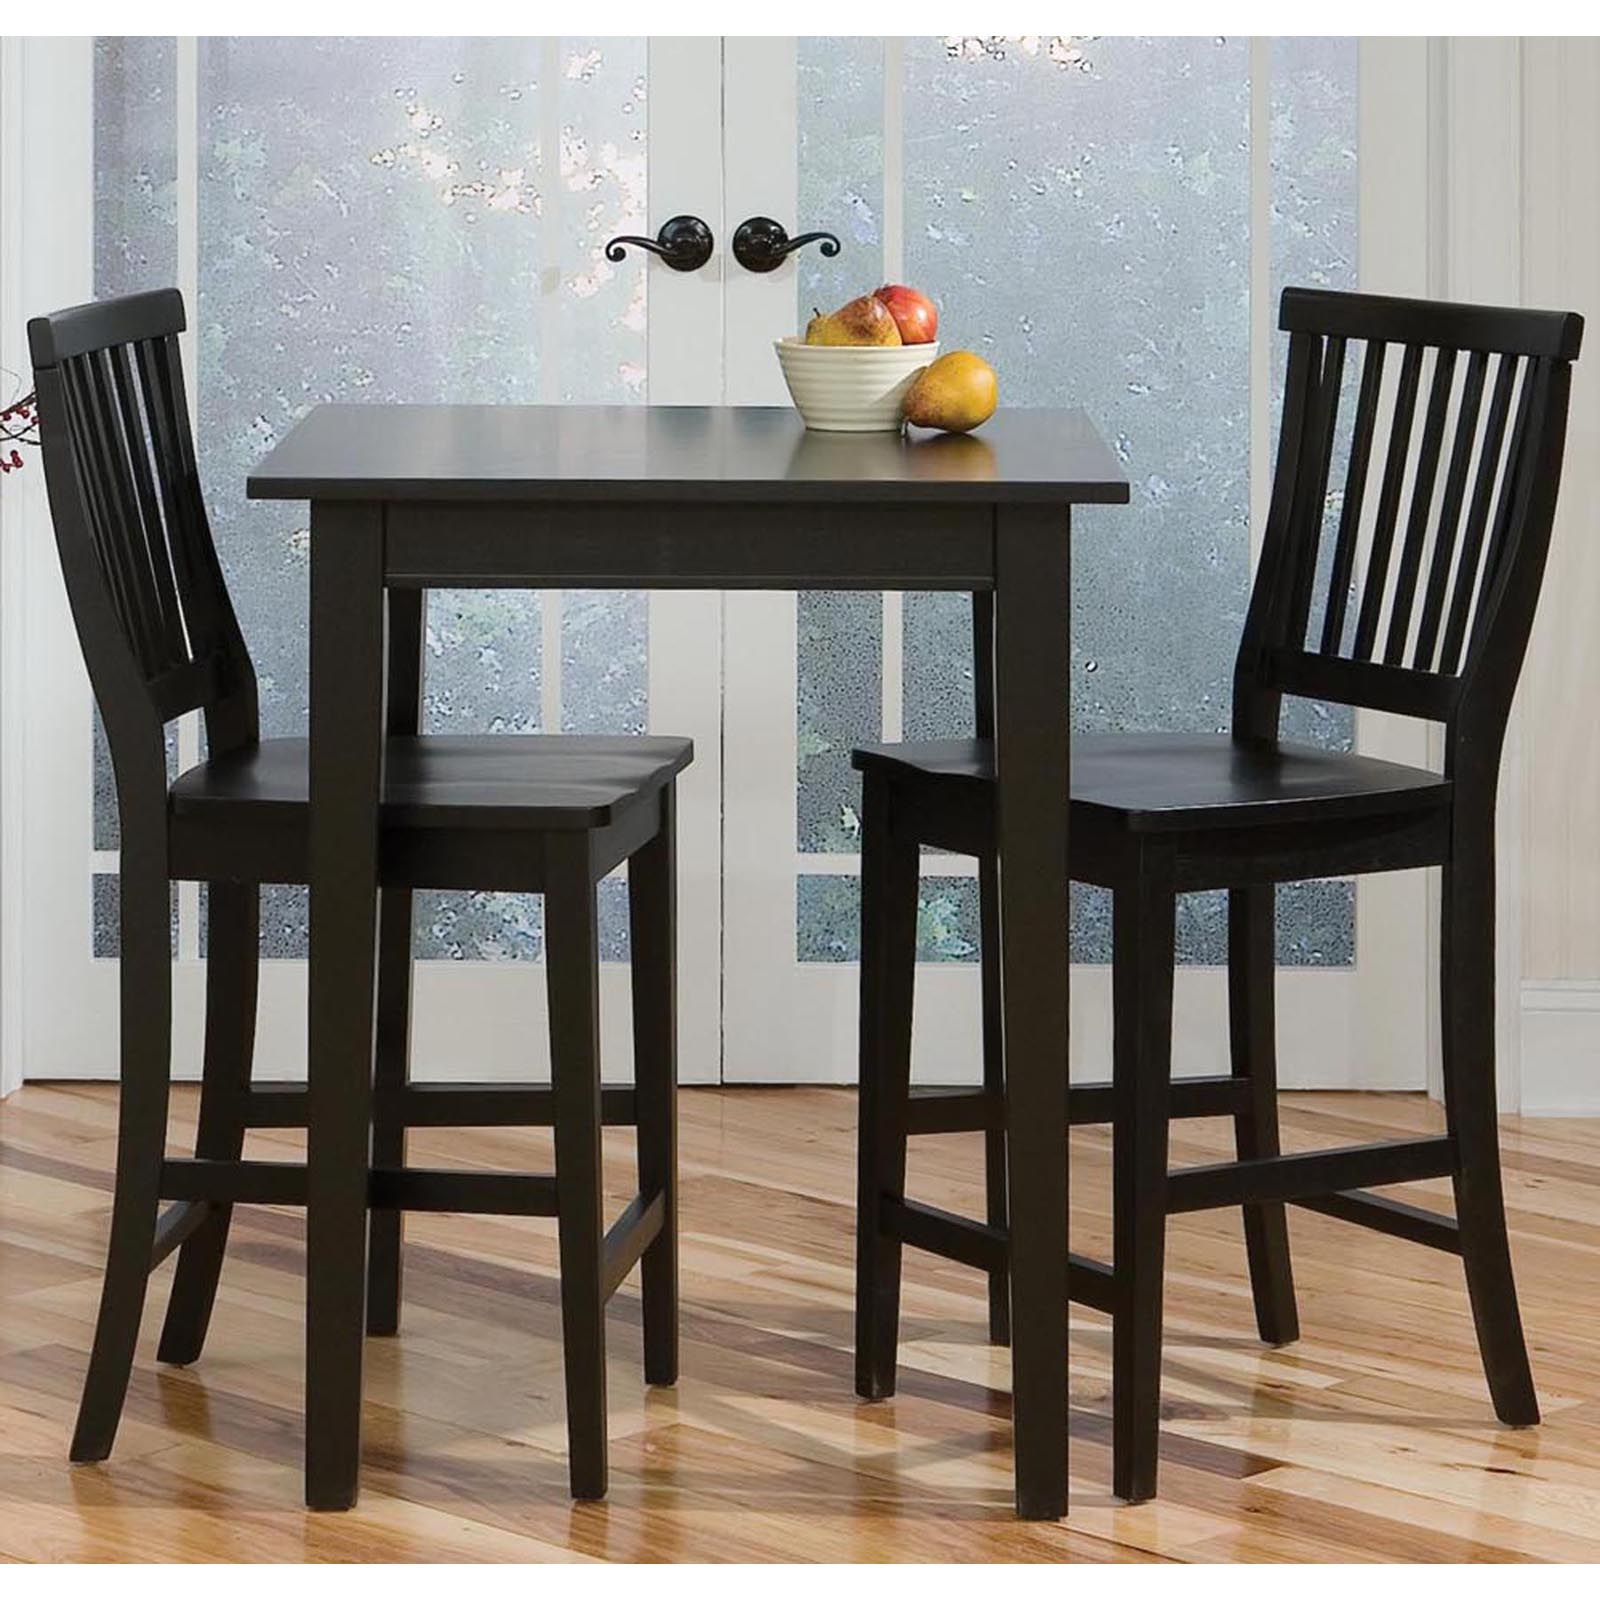 Home Styles Arts U0026 Crafts 3 Piece Counter Height Pub Table Set   Ebony